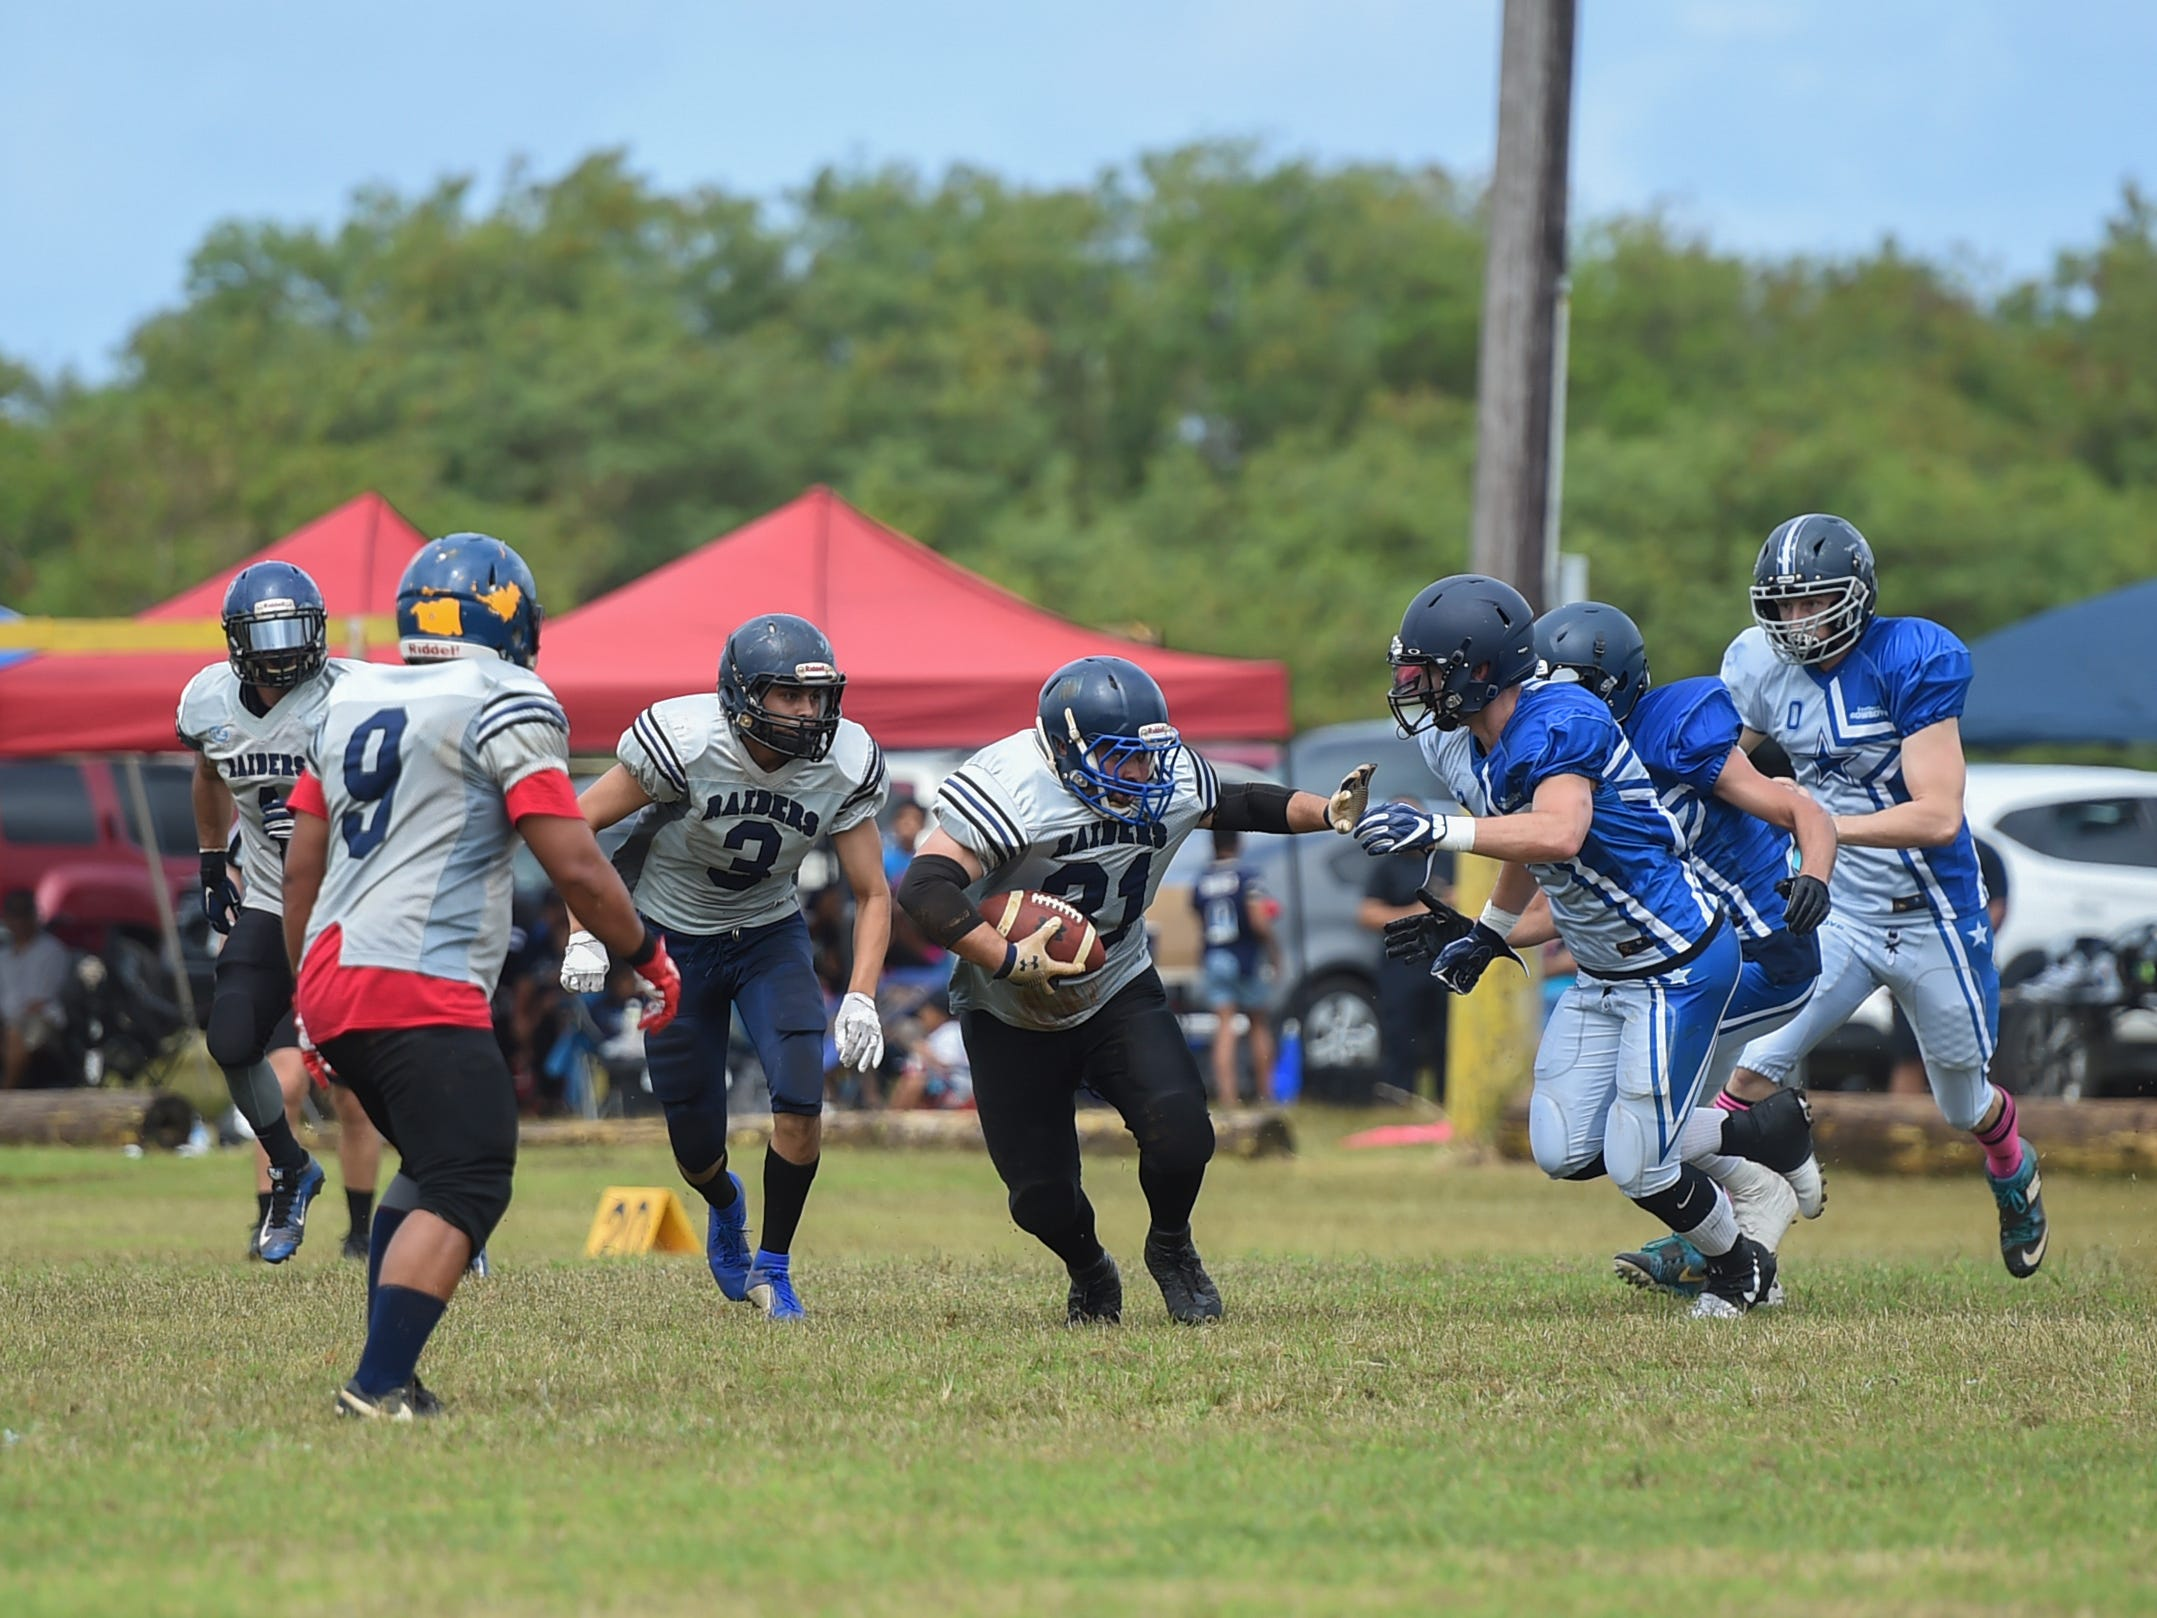 Guam Raiders player Andy Fernandez (31) rushes the ball against the Southern Cowboys during their Budweiser Guahan Varsity Football League game at Eagles Field in Mangilao, Feb. 2, 2019.